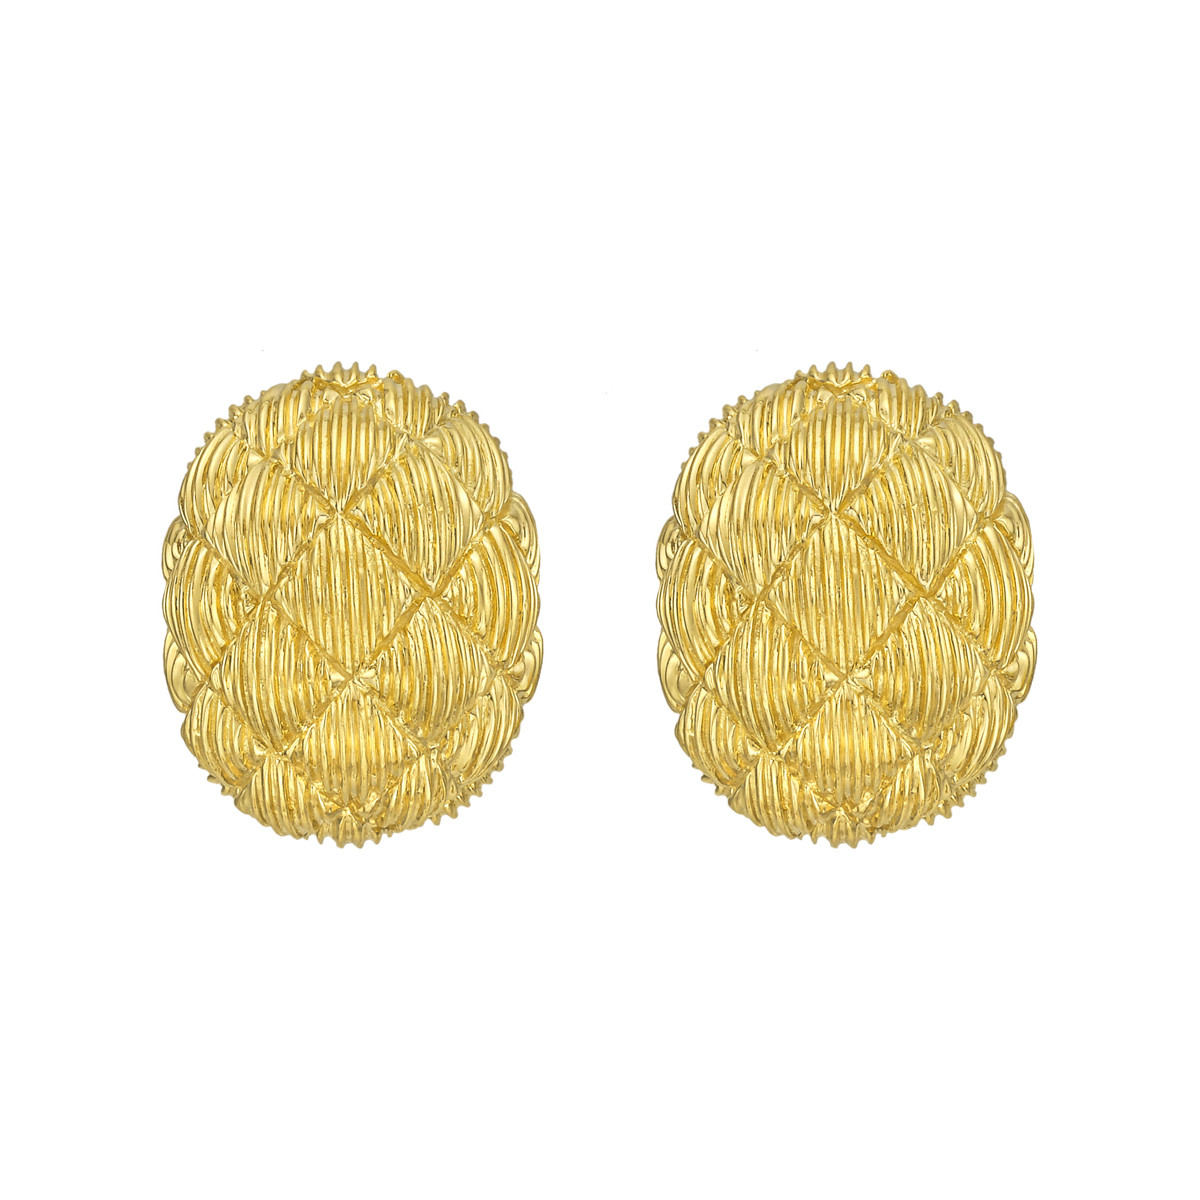 Textured 18k Yellow Gold Oval Earclips